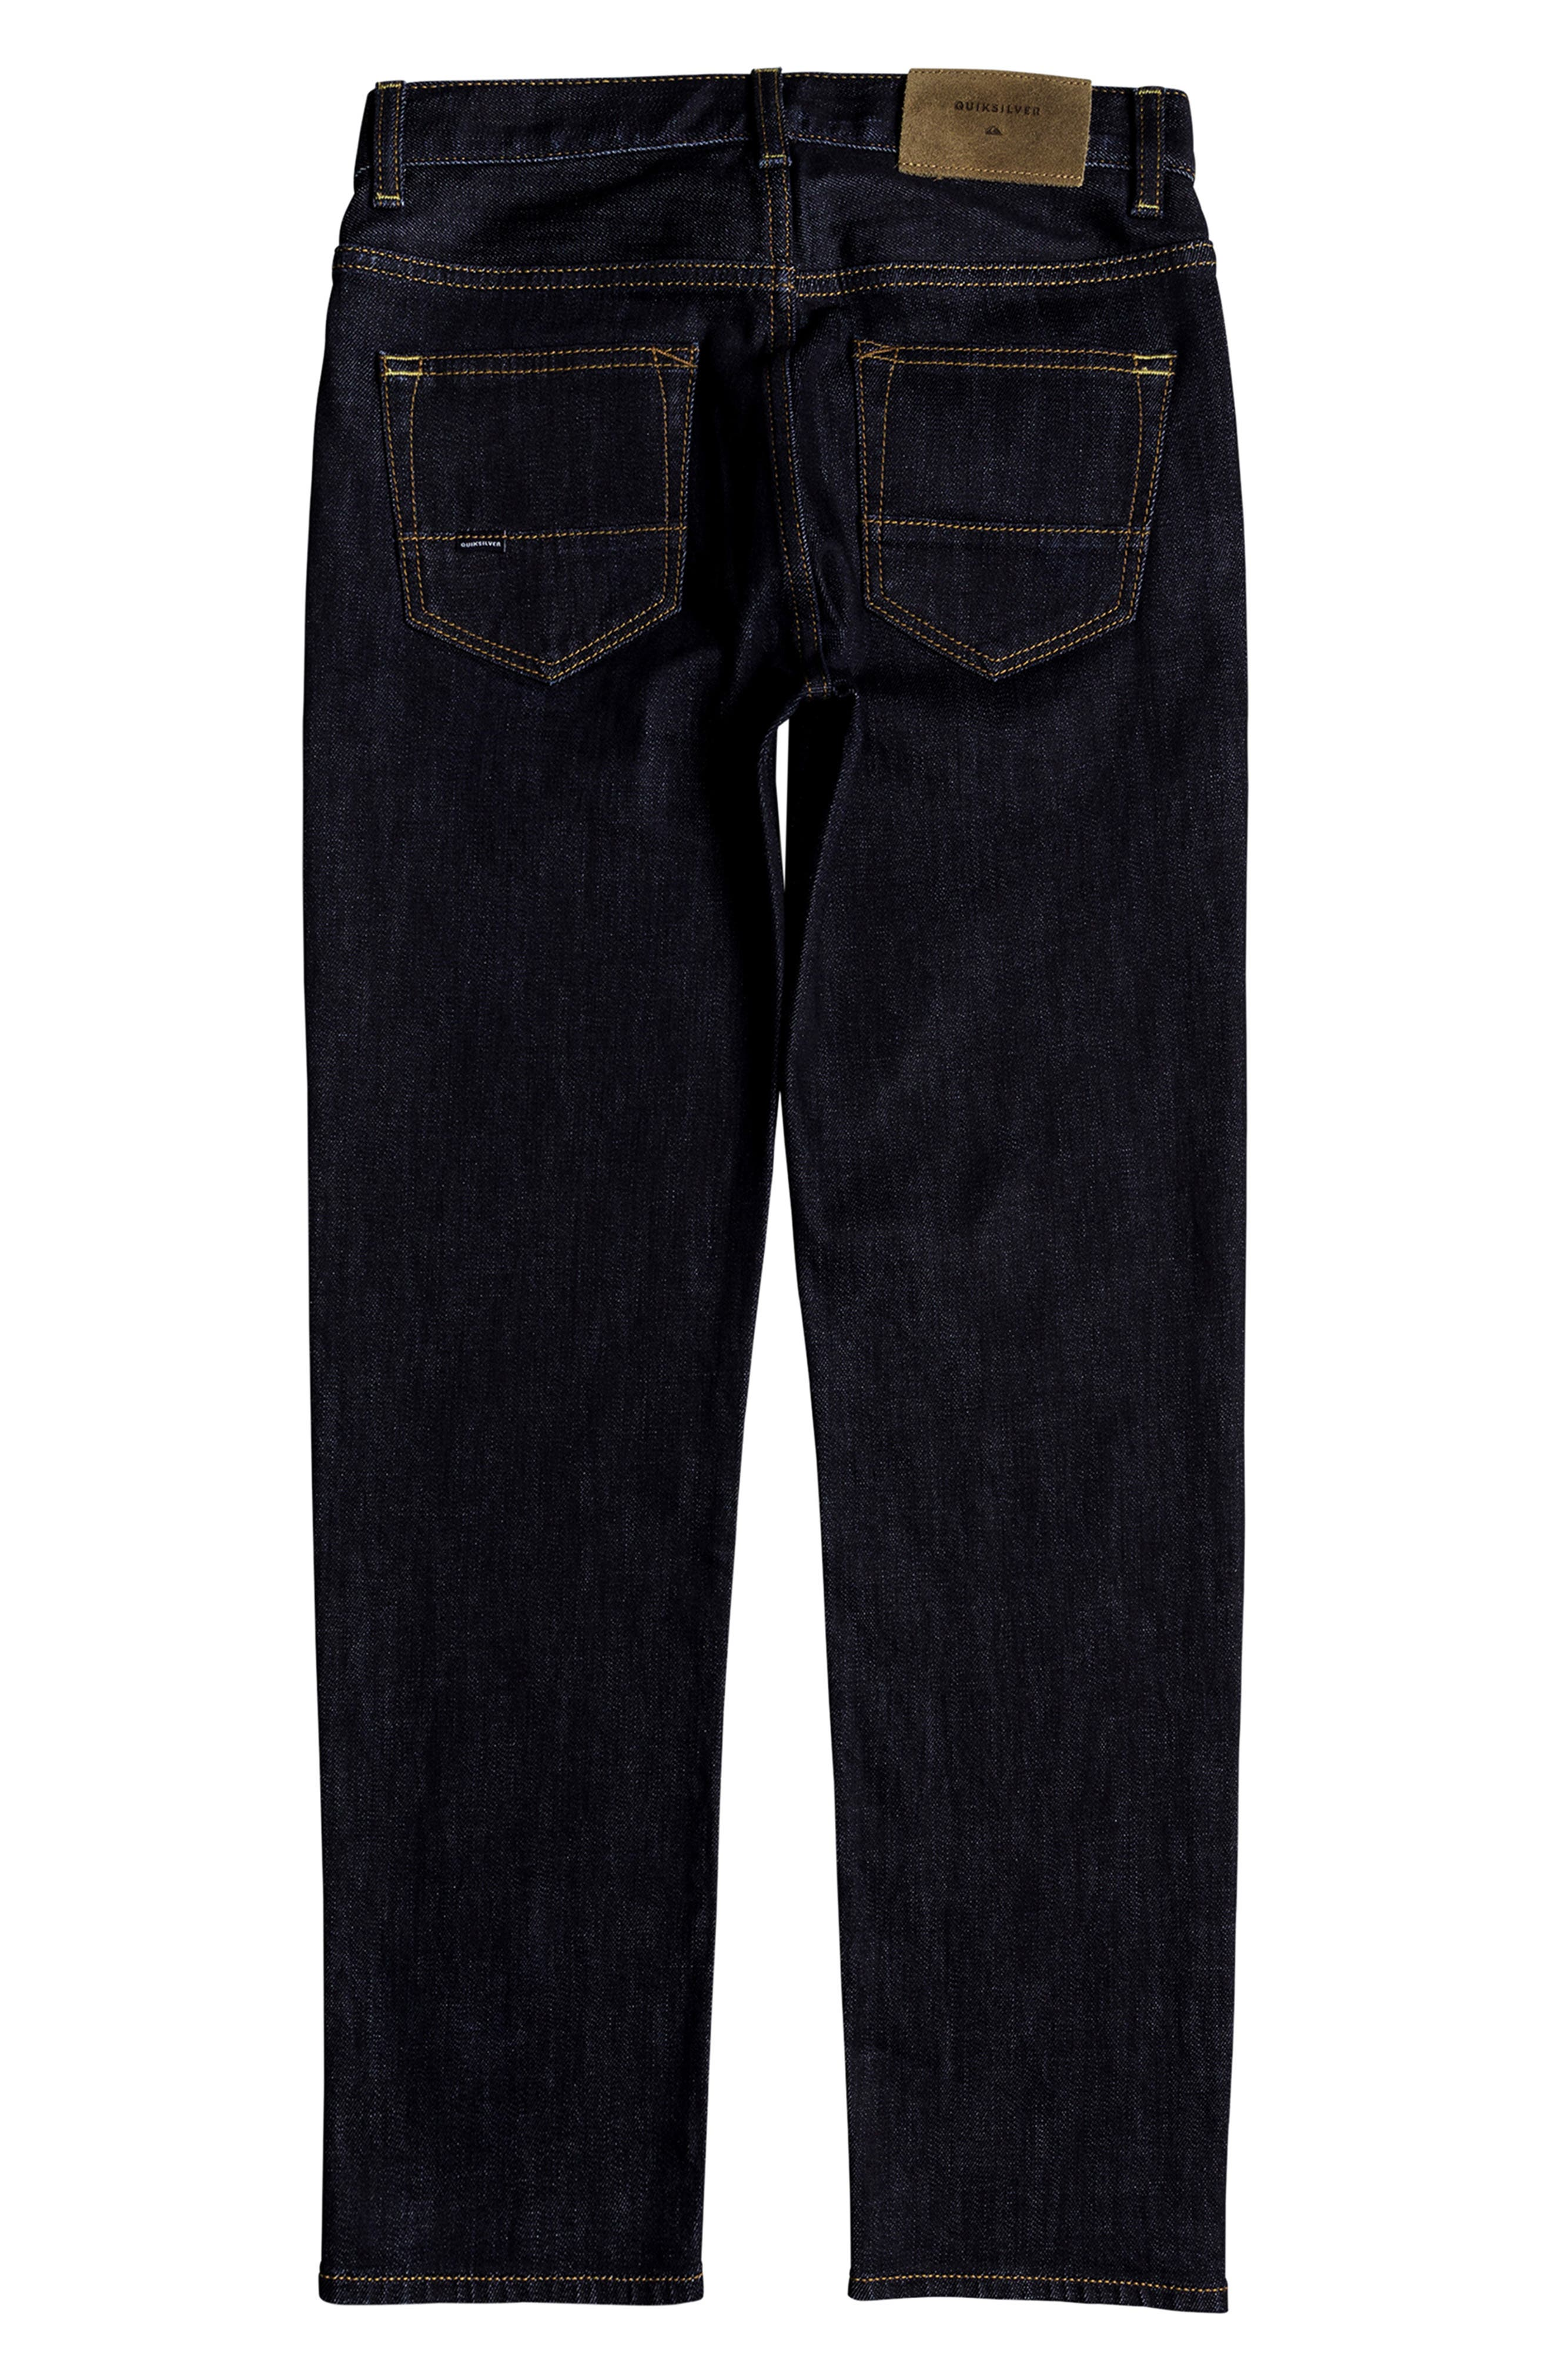 Sequel Straight Leg Jeans,                             Alternate thumbnail 2, color,                             RINSE